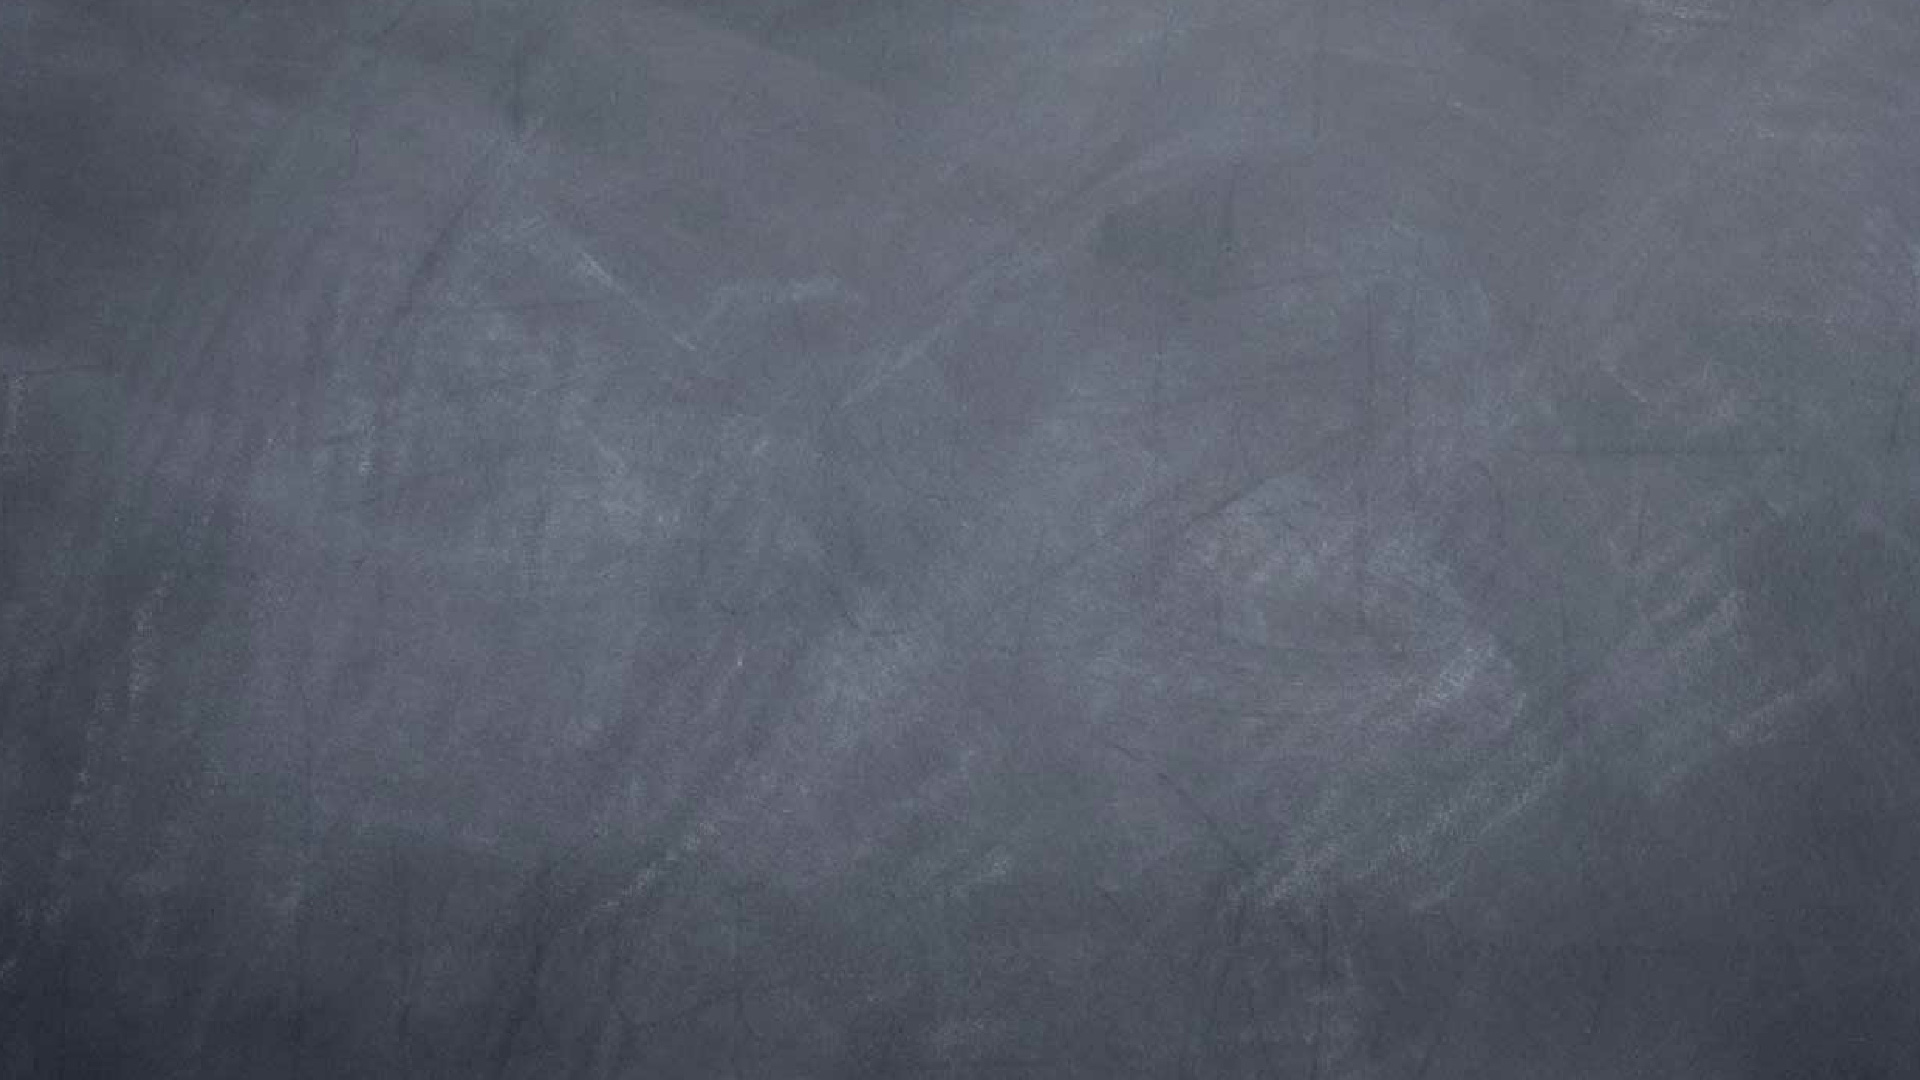 Free Download Blank Background Jpg Picture 1920x1080 For Your